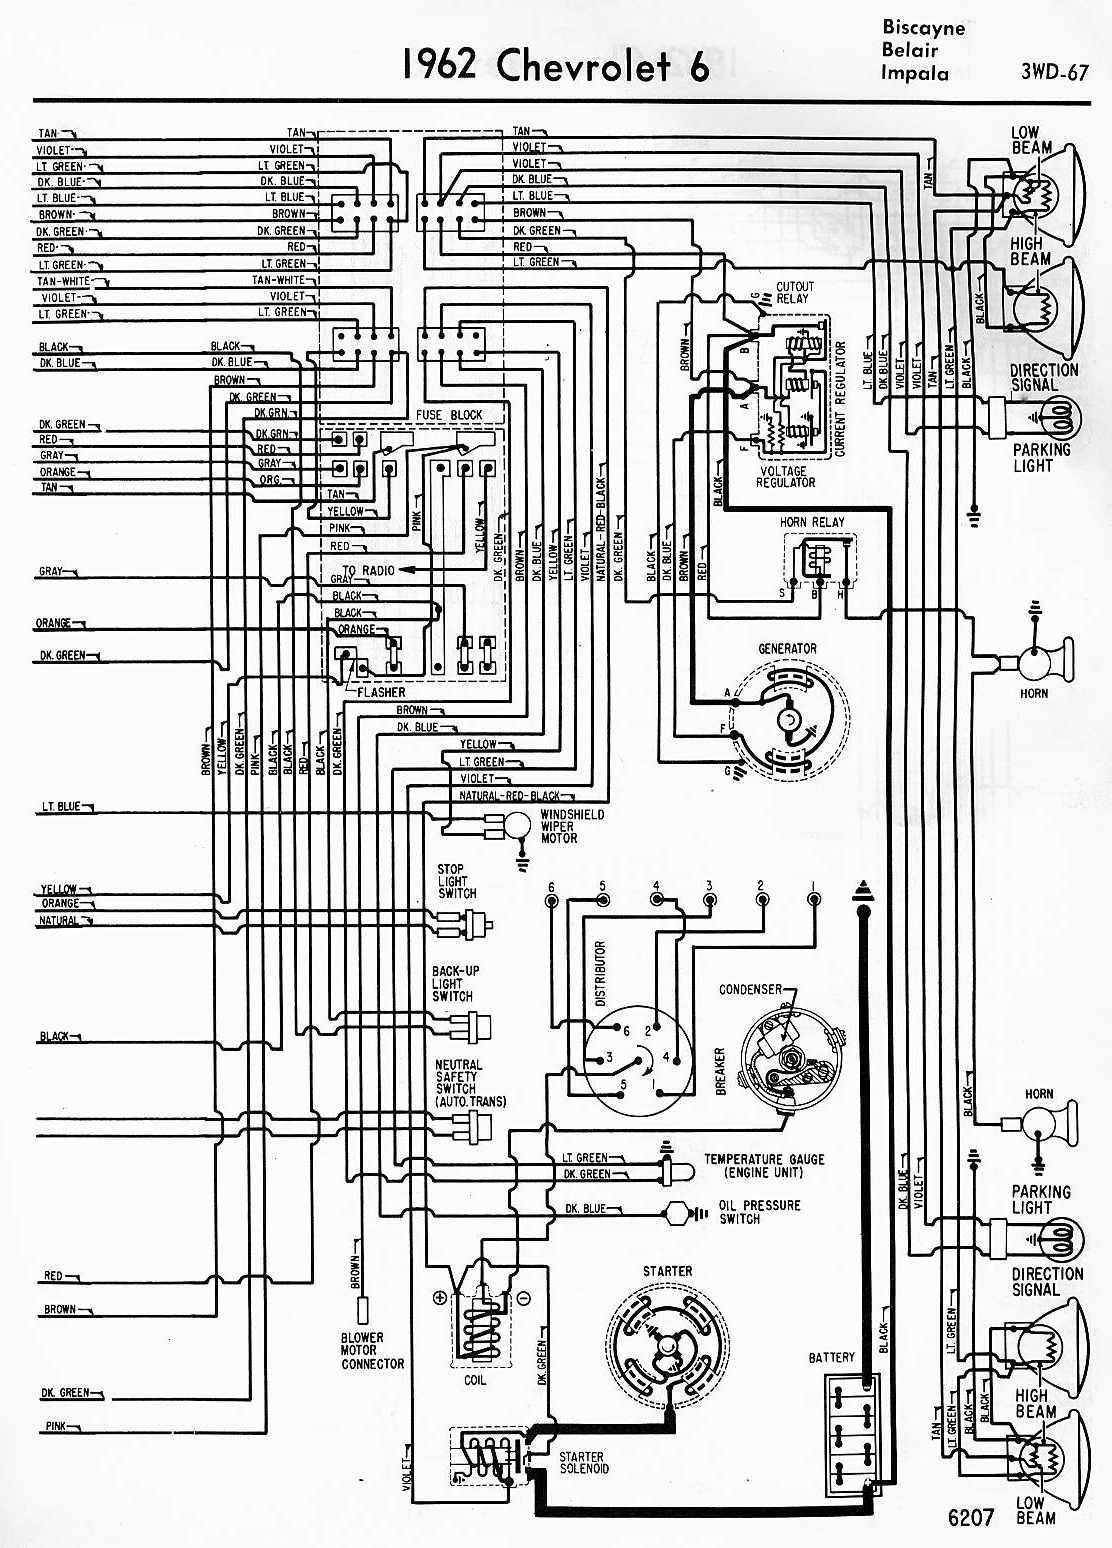 electrical wiring diagram of 1962 chevrolet 6 all about 1966 Chevelle Dash Wiring  Diagram 1966 Chevelle Dash Wiring Diagram